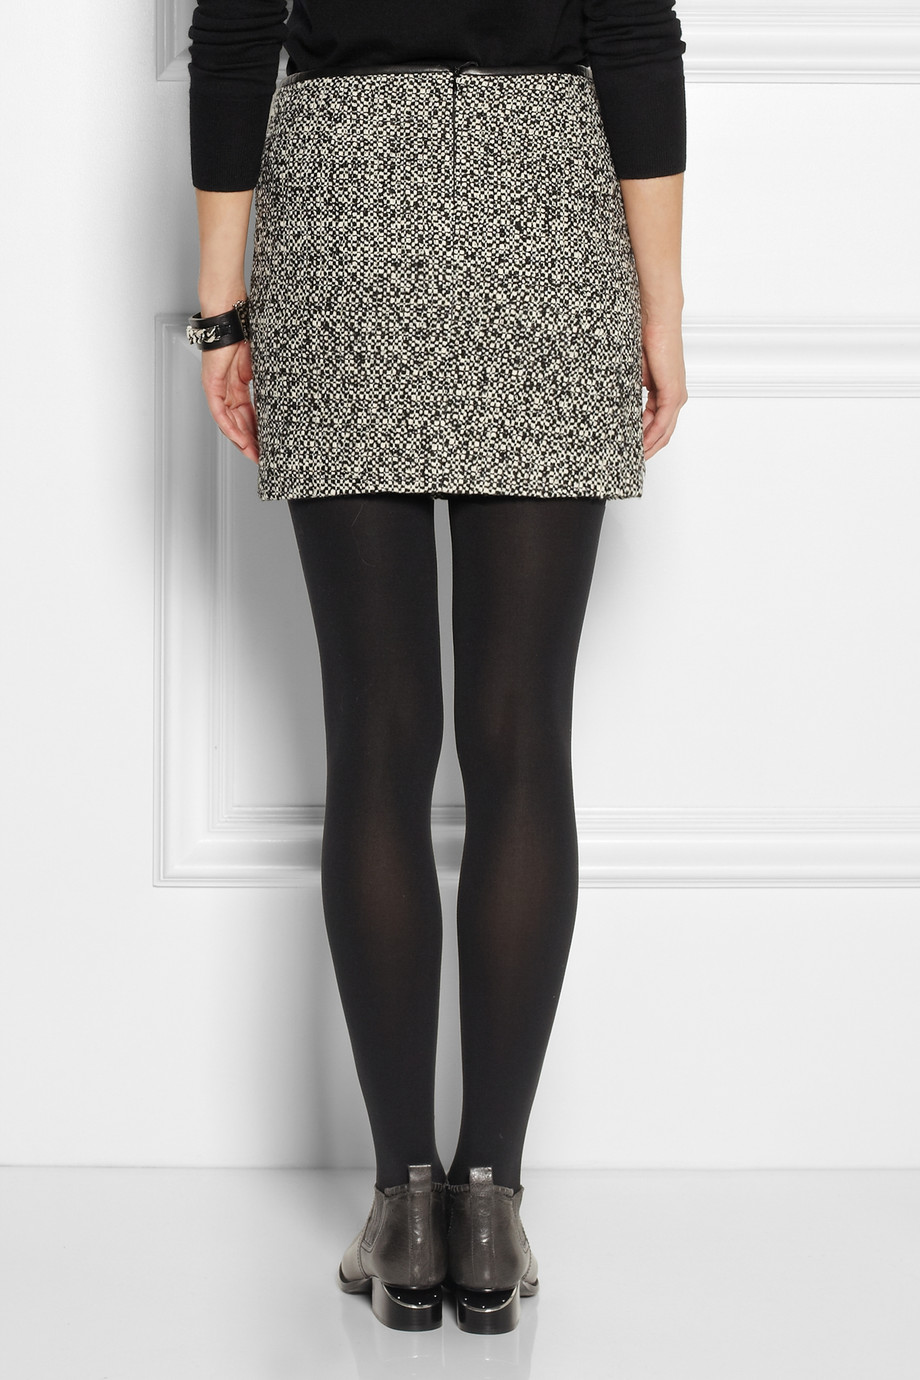 Karl lagerfeld Sabine Leather trimmed Tweed Mini Skirt in Gray | Lyst